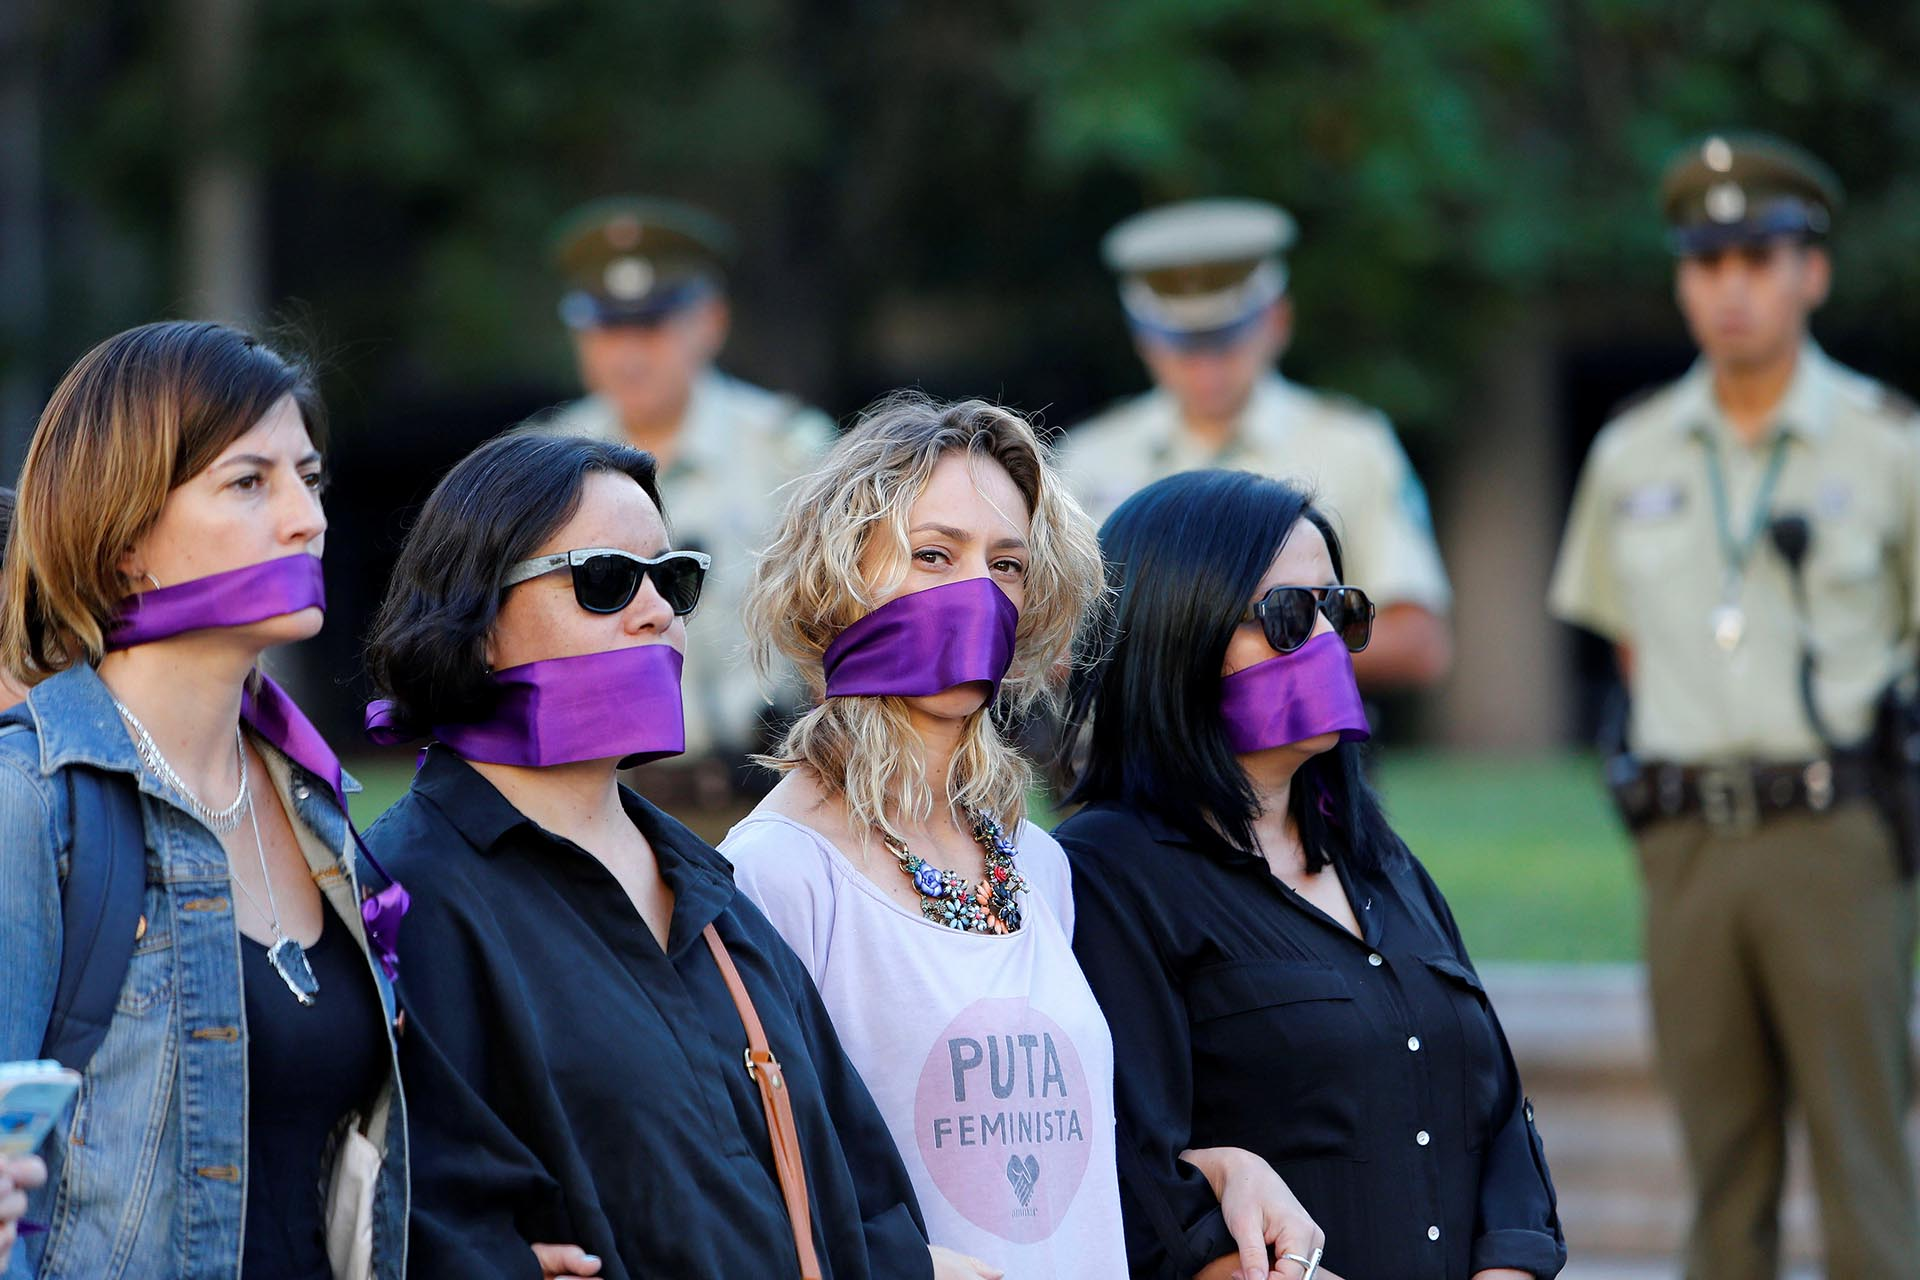 Women cover their mouths as they attend a peaceful demonstration in front of the government house as part of International Women's Day, in Santiago, Chile March 8, 2017. REUTERS/Carlos Vera EDITORIAL USE ONLY. NO RESALES. NO ARCHIVE